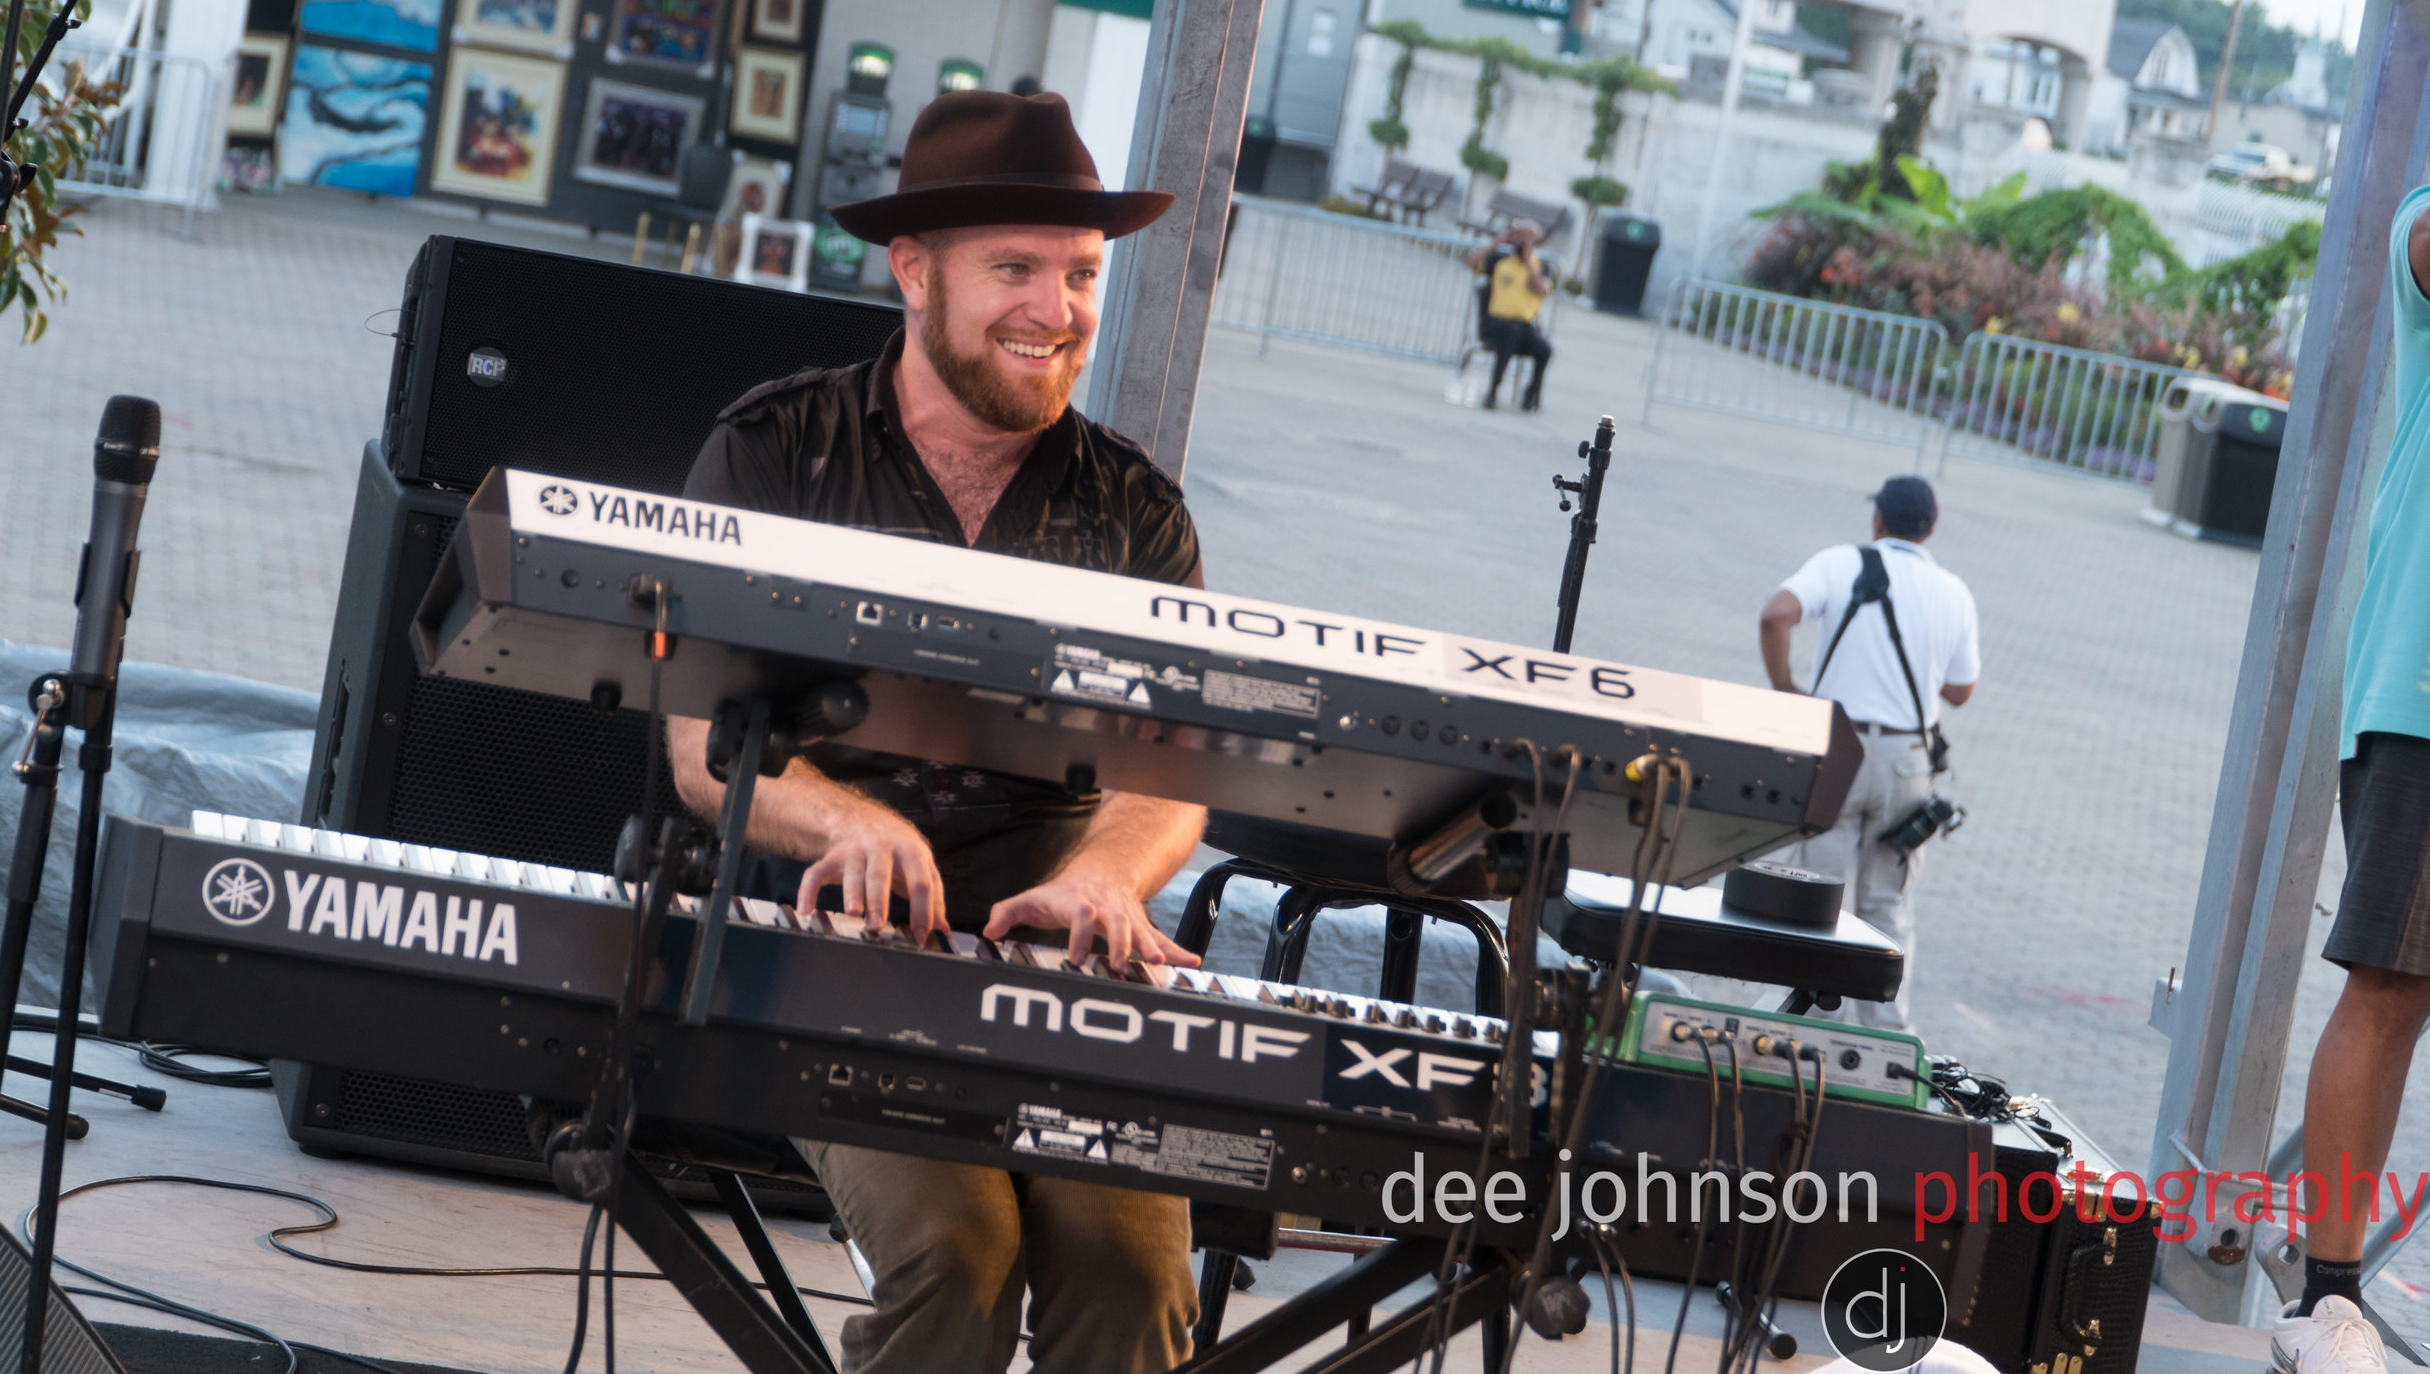 Photo by: Dee Johnson Photography